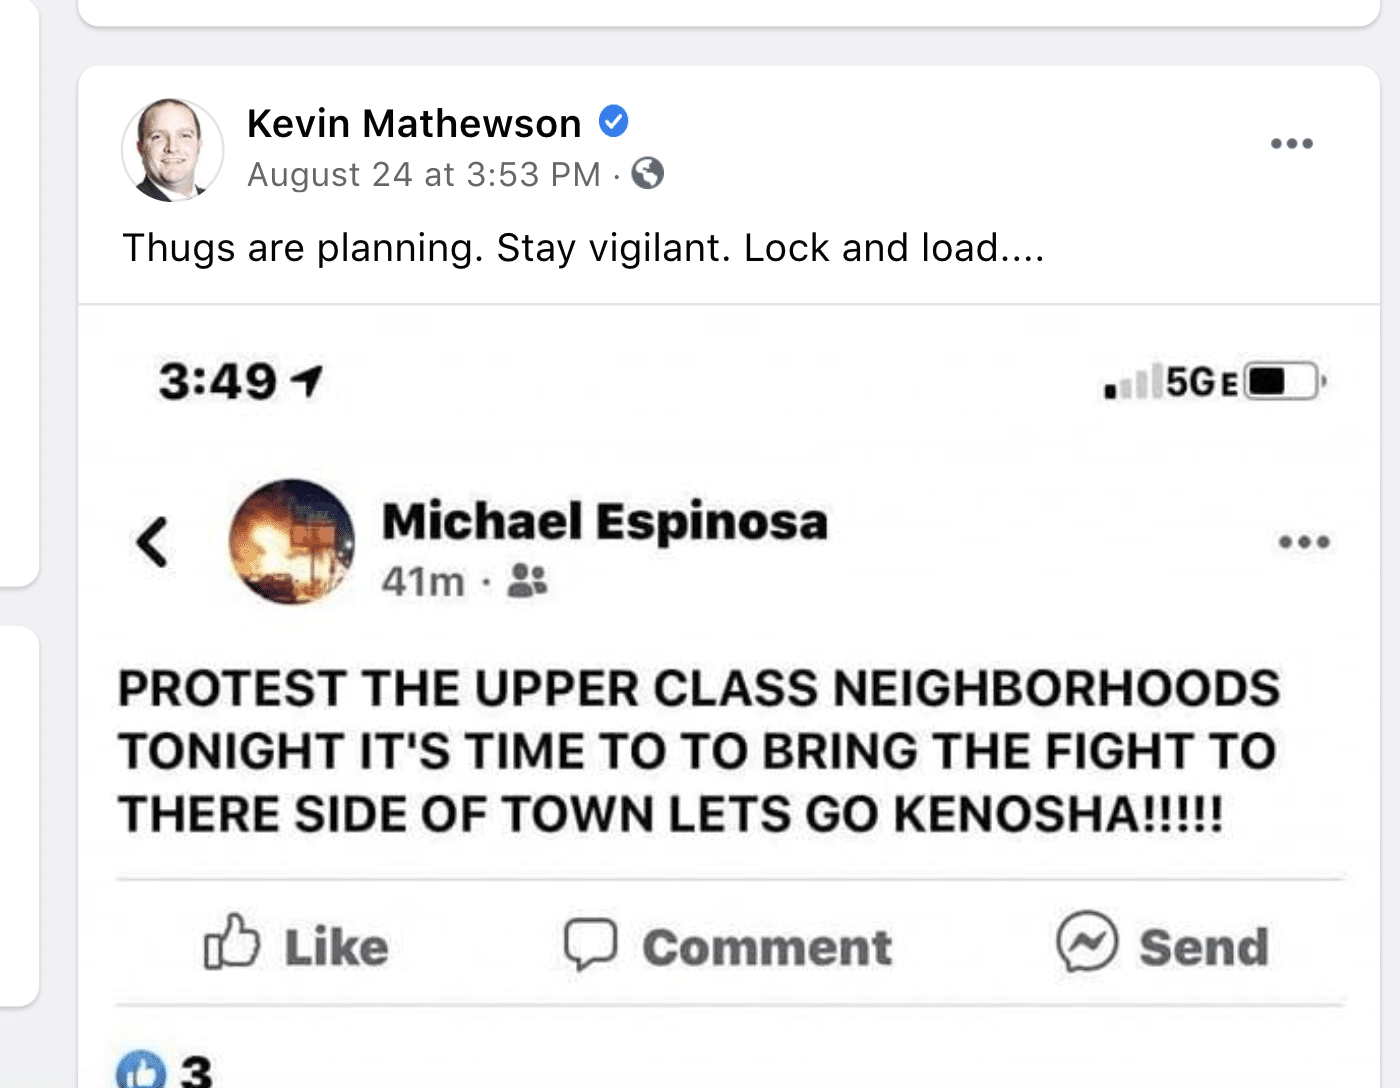 A screenshot from Kevin Mathewson's Facebook page.